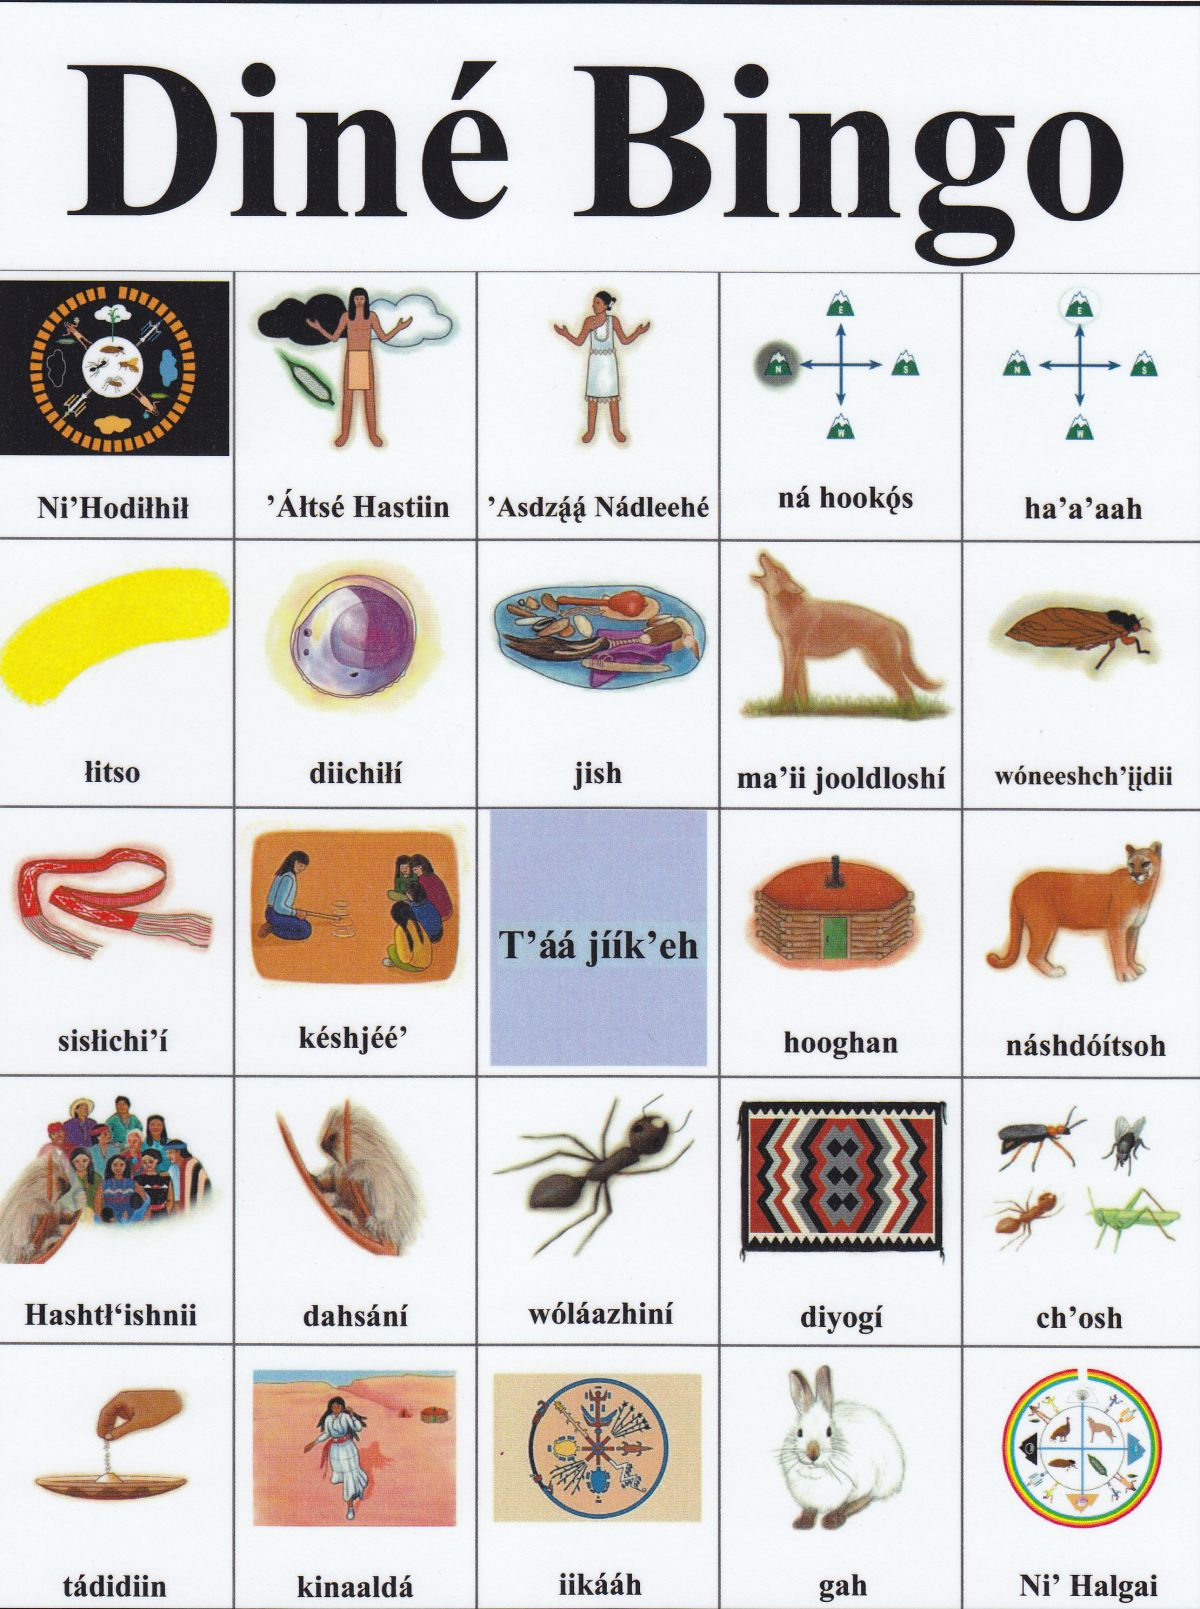 Dinè Bingo History And Tradition